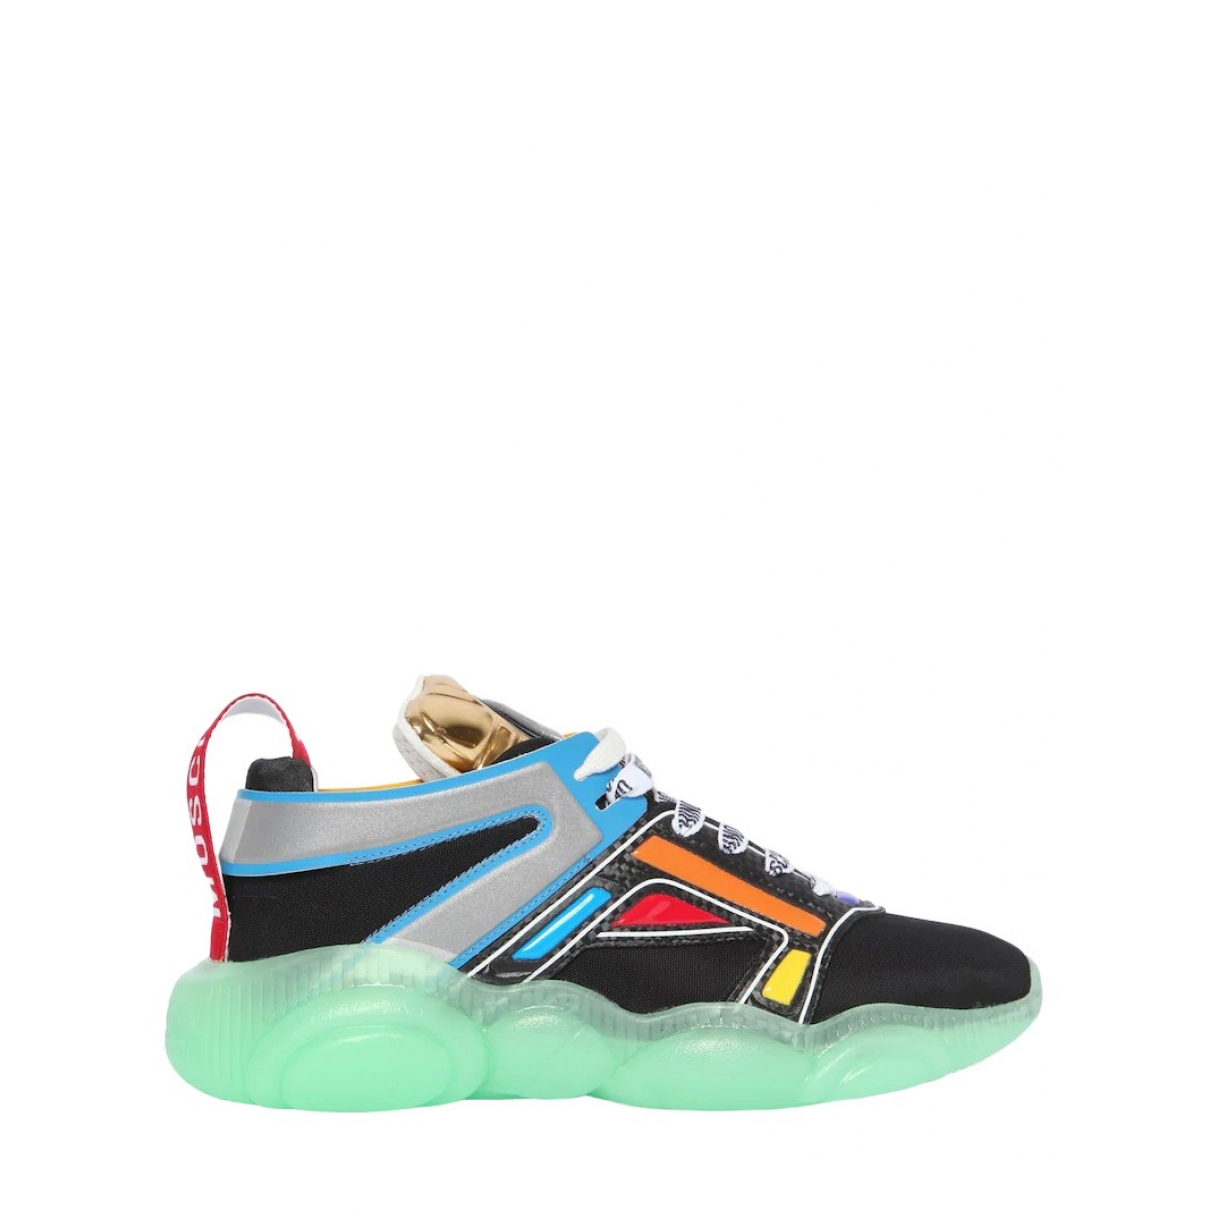 Moschino \N Sneakers in  Bunt Polyester